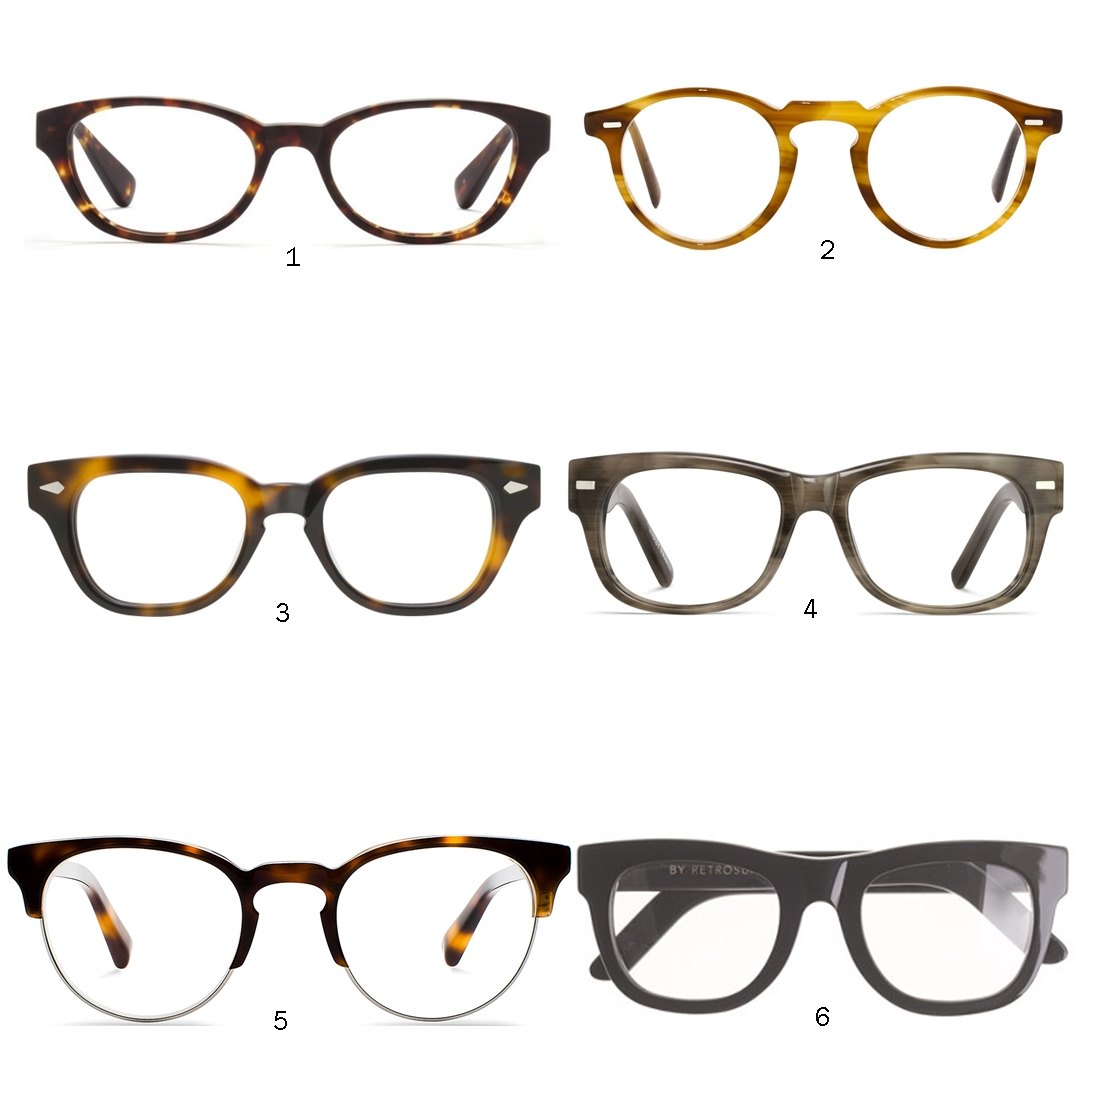 Specstacular Optical Retro Frames Warby Parker